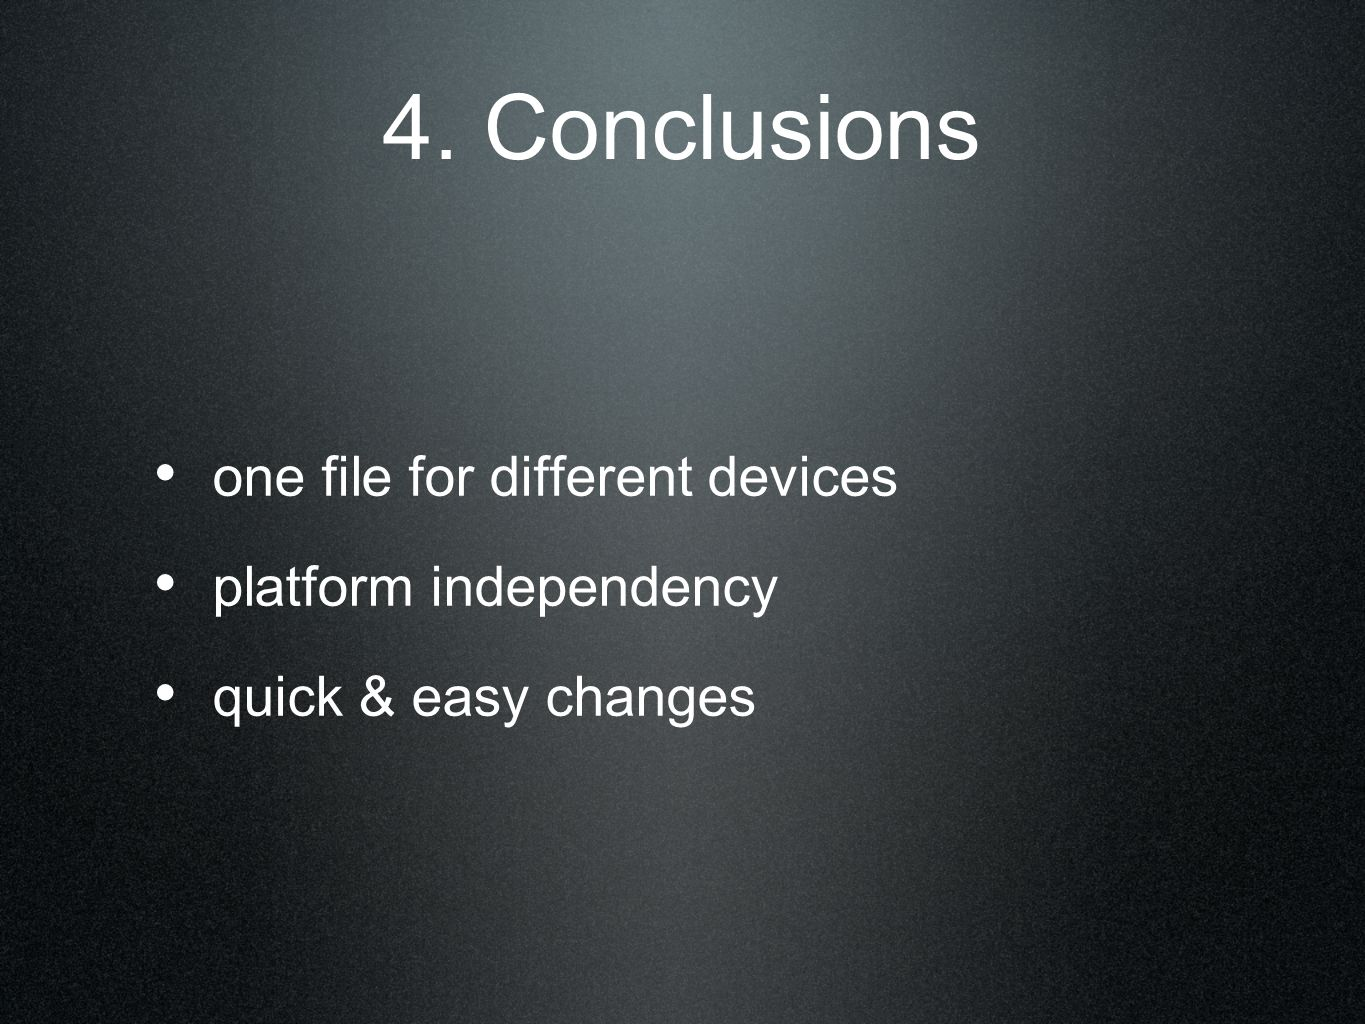 4. Conclusions one file for different devices platform independency quick & easy changes